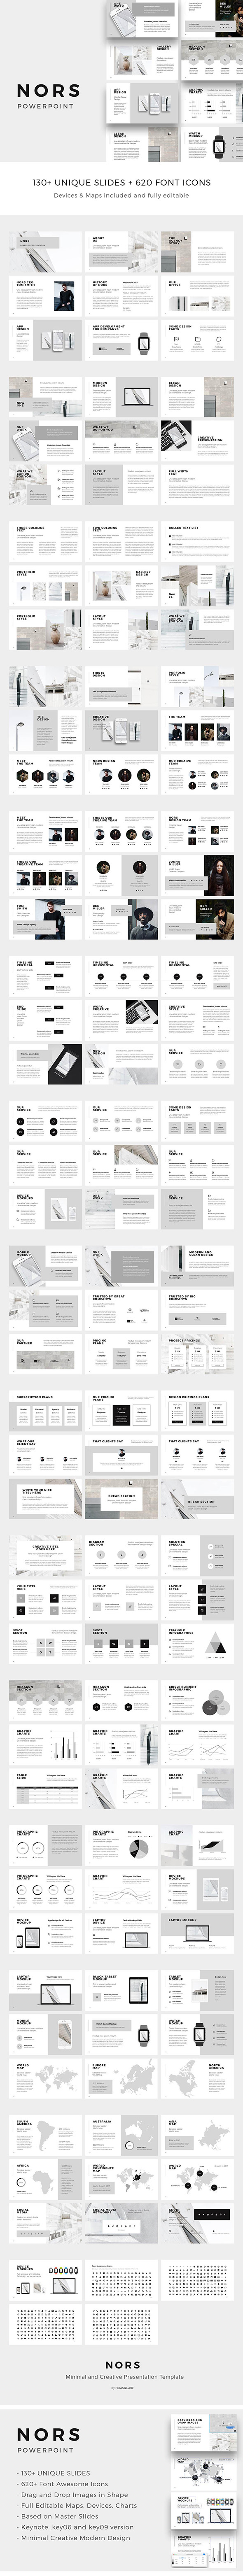 NORS - Minimal Powerpoint Template - PowerPoint Templates Presentation Templates